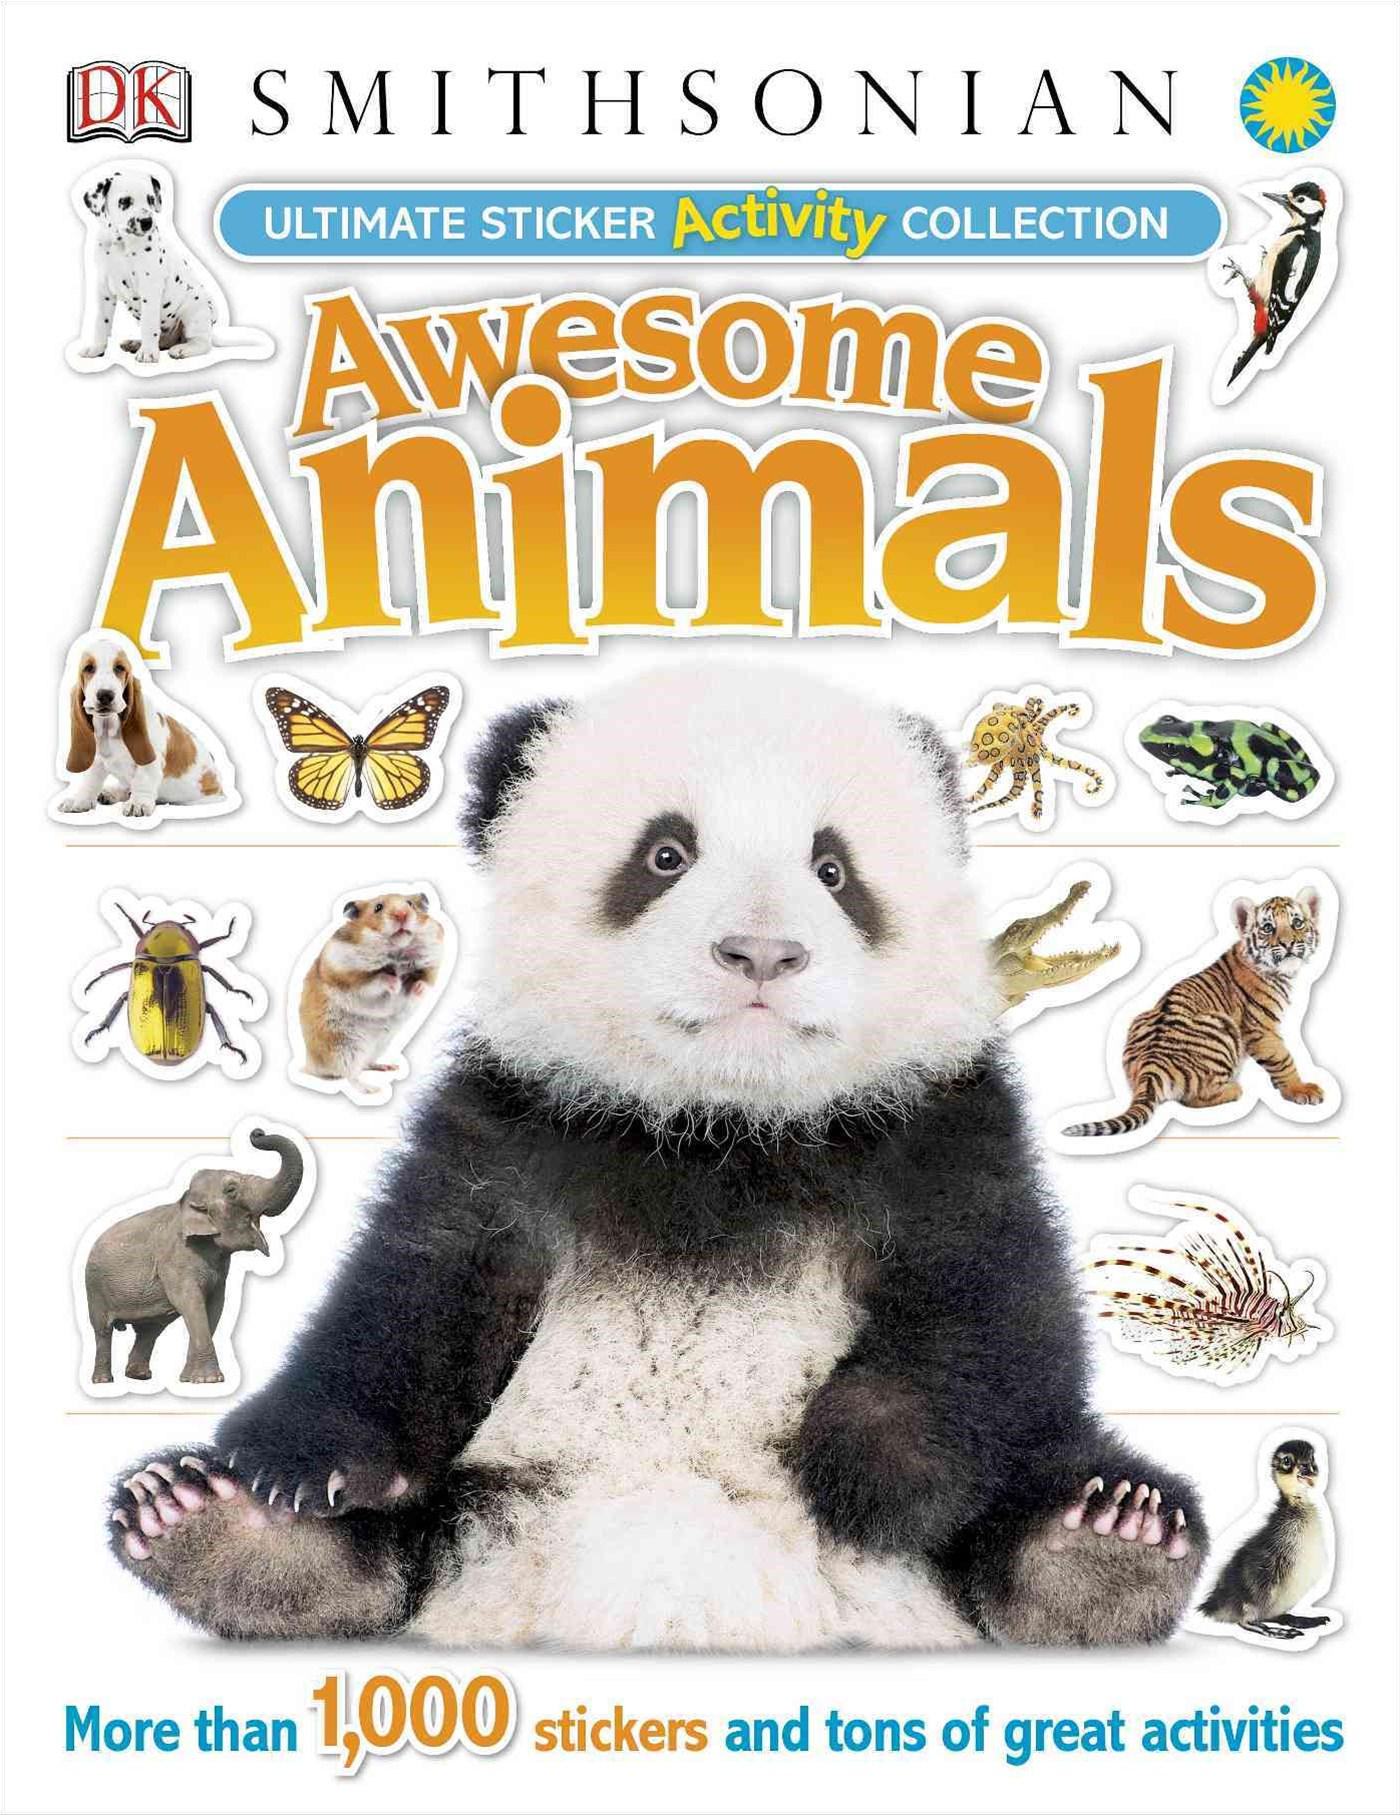 Awesome Animals: Ultimate Sticker Activity Collection